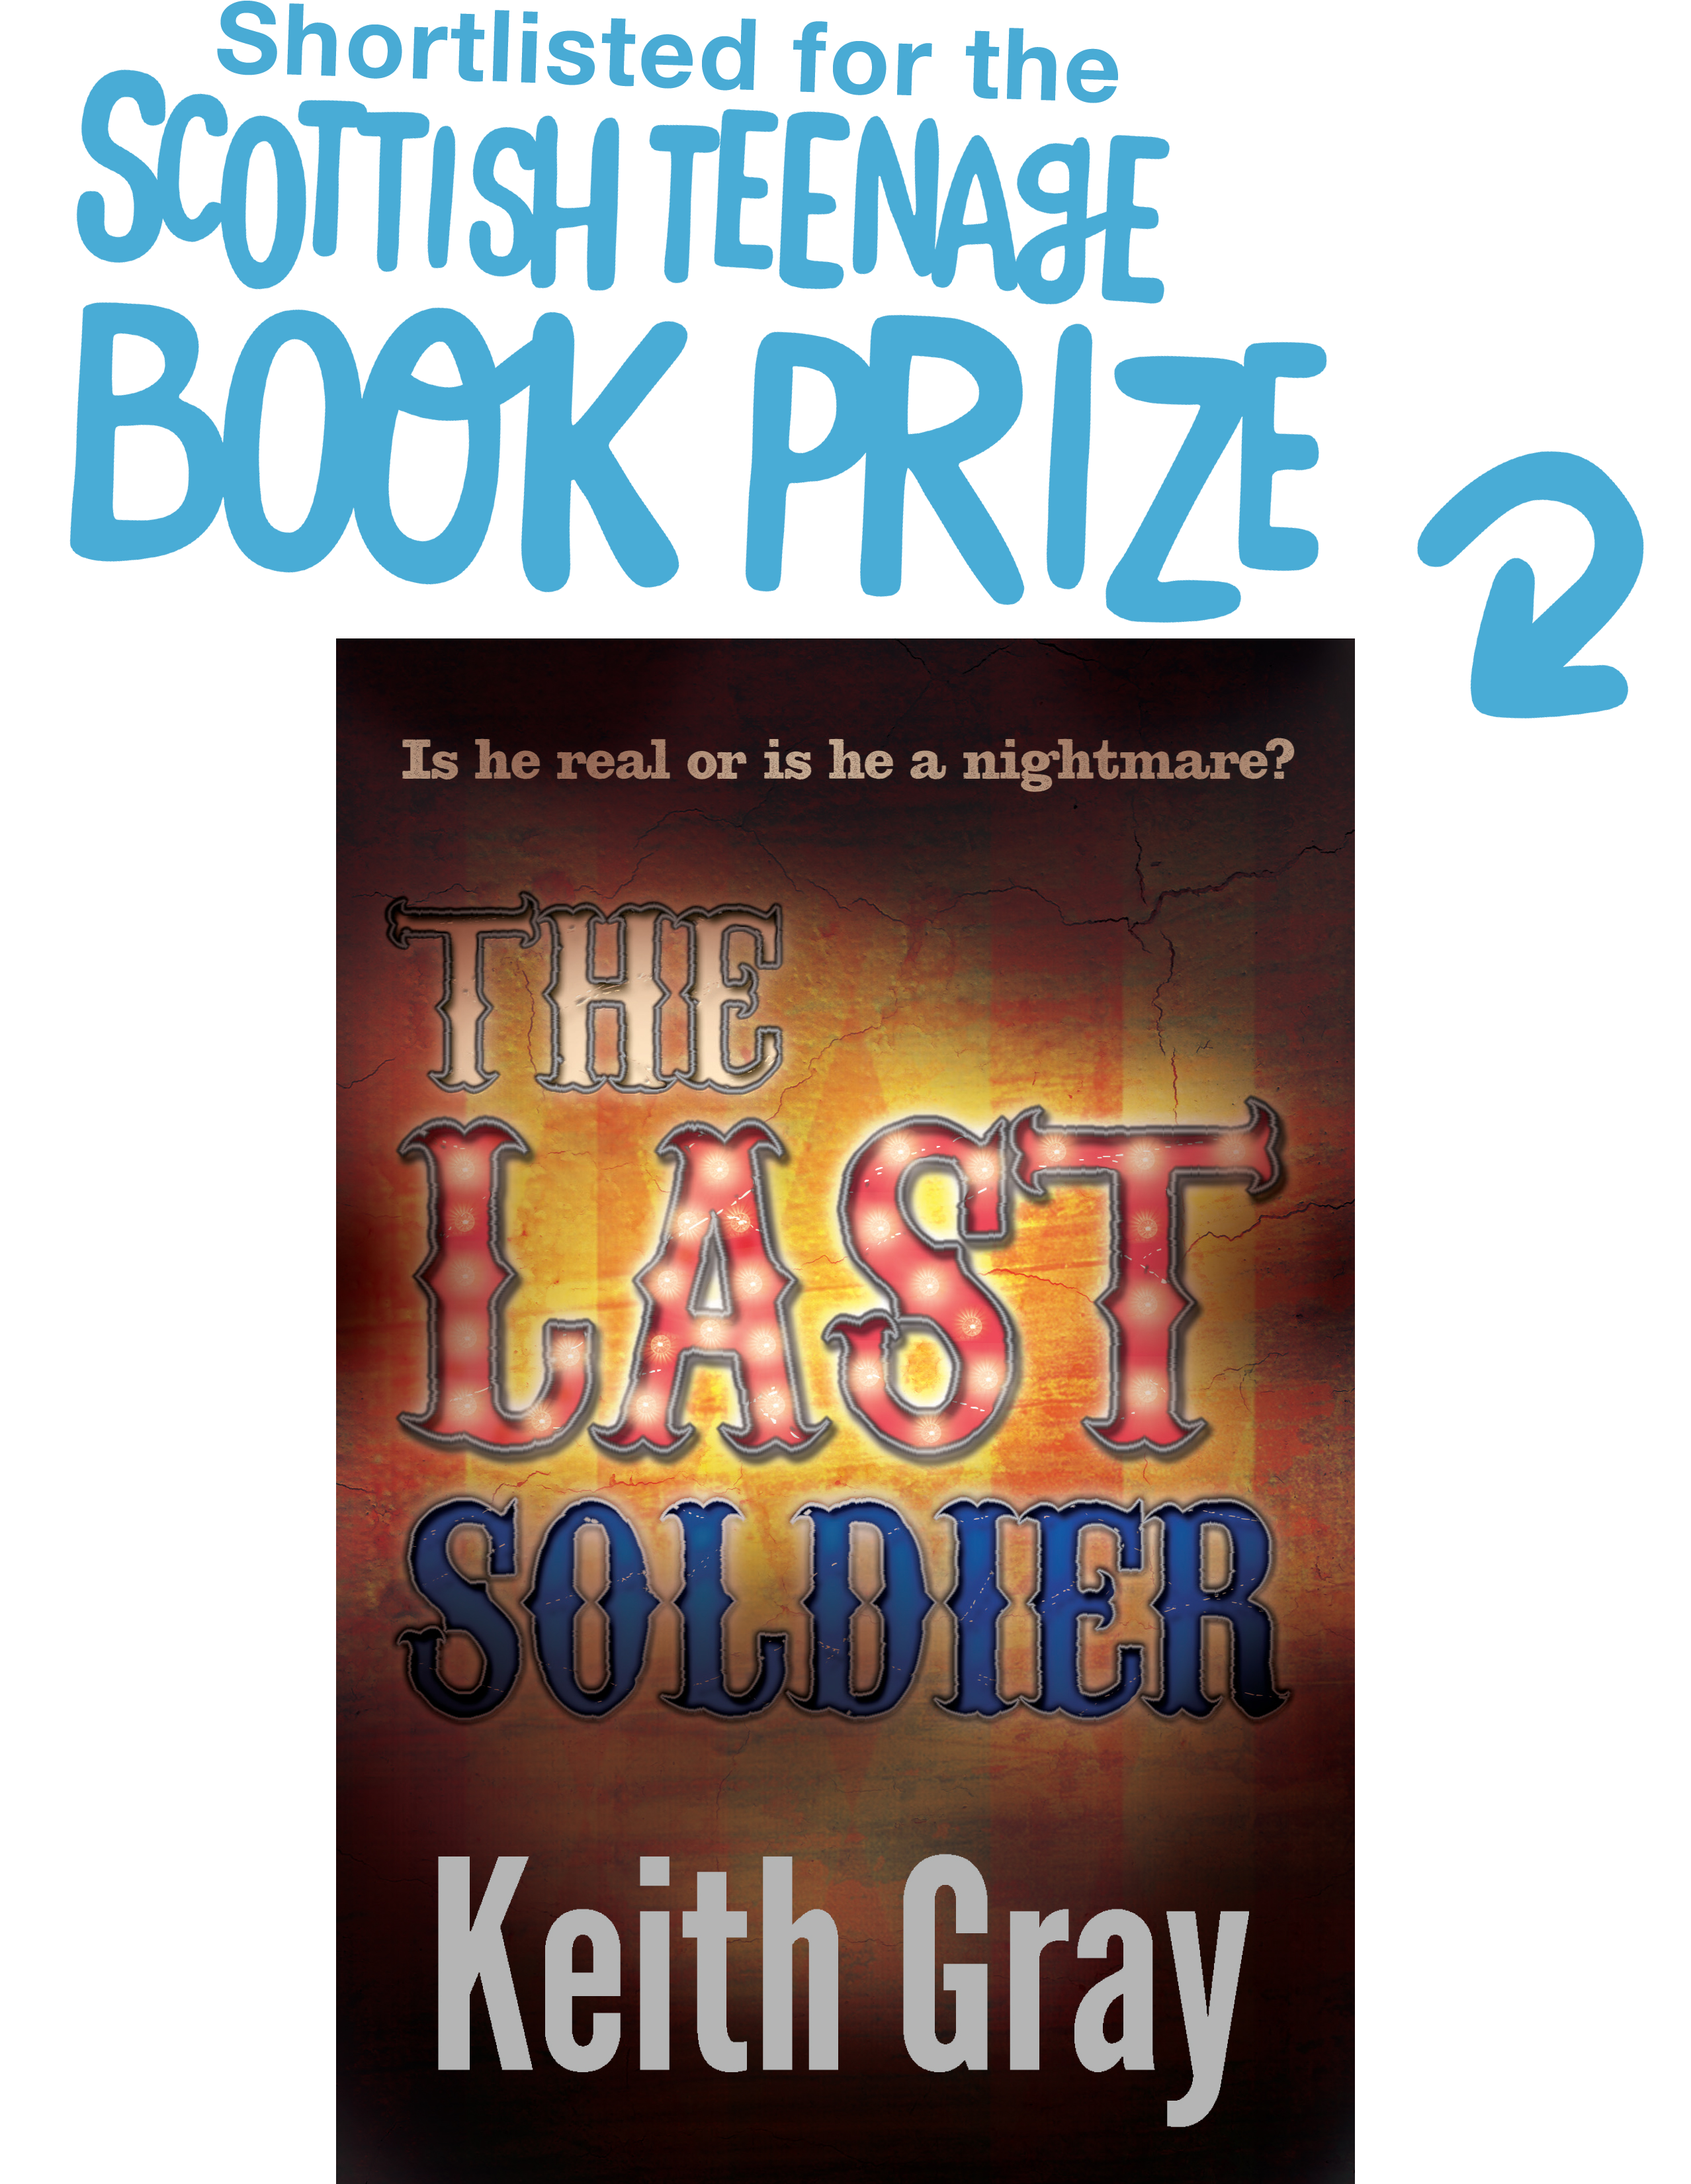 The Last Solider by Keith Gray, shortlisted for the Scottish Teenage Book Prize